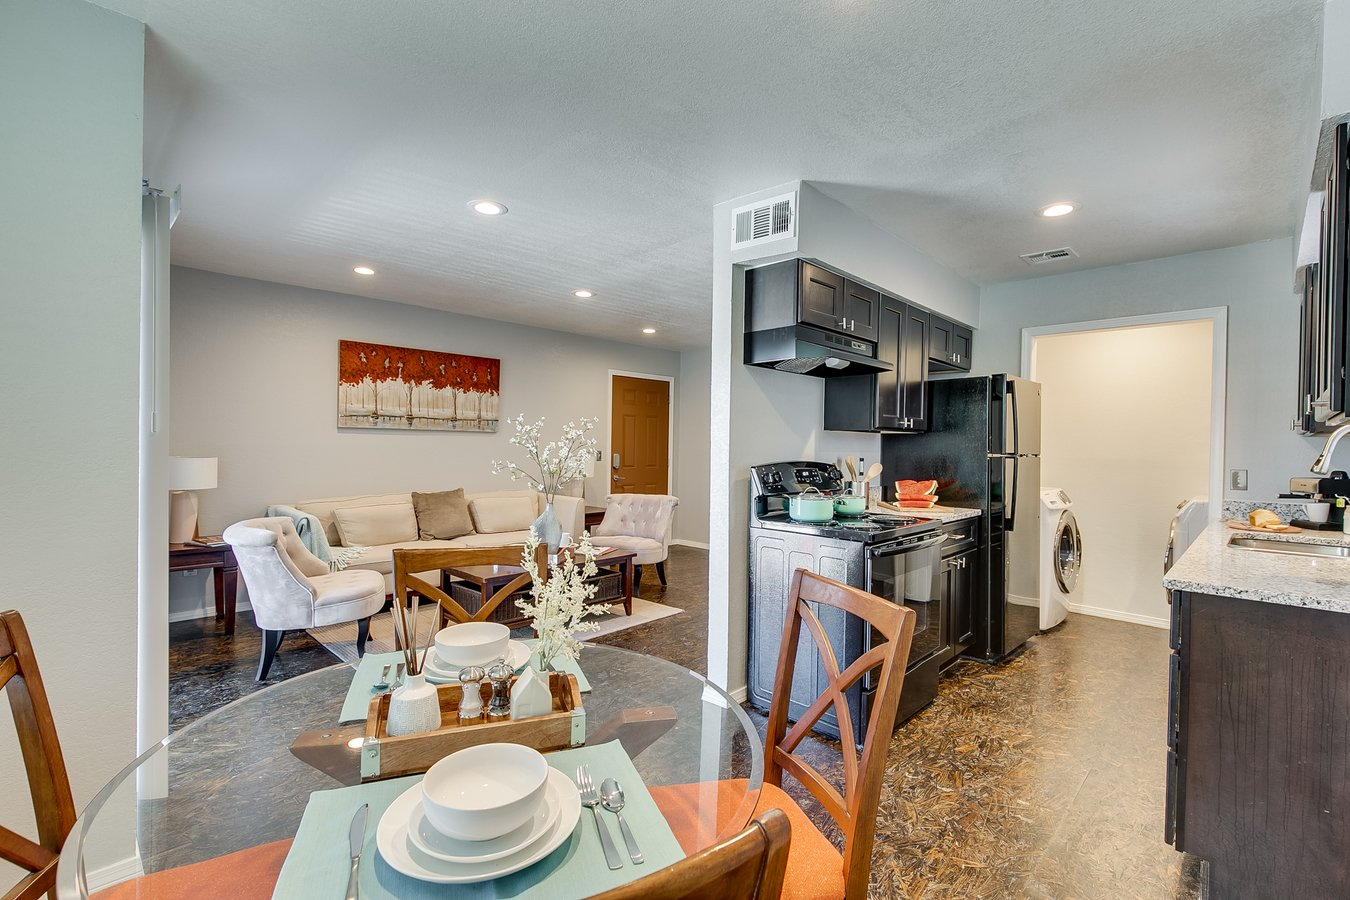 2 Bedrooms 1 Bathroom Apartment for rent at Summer Pointe Apartments in Norman, OK